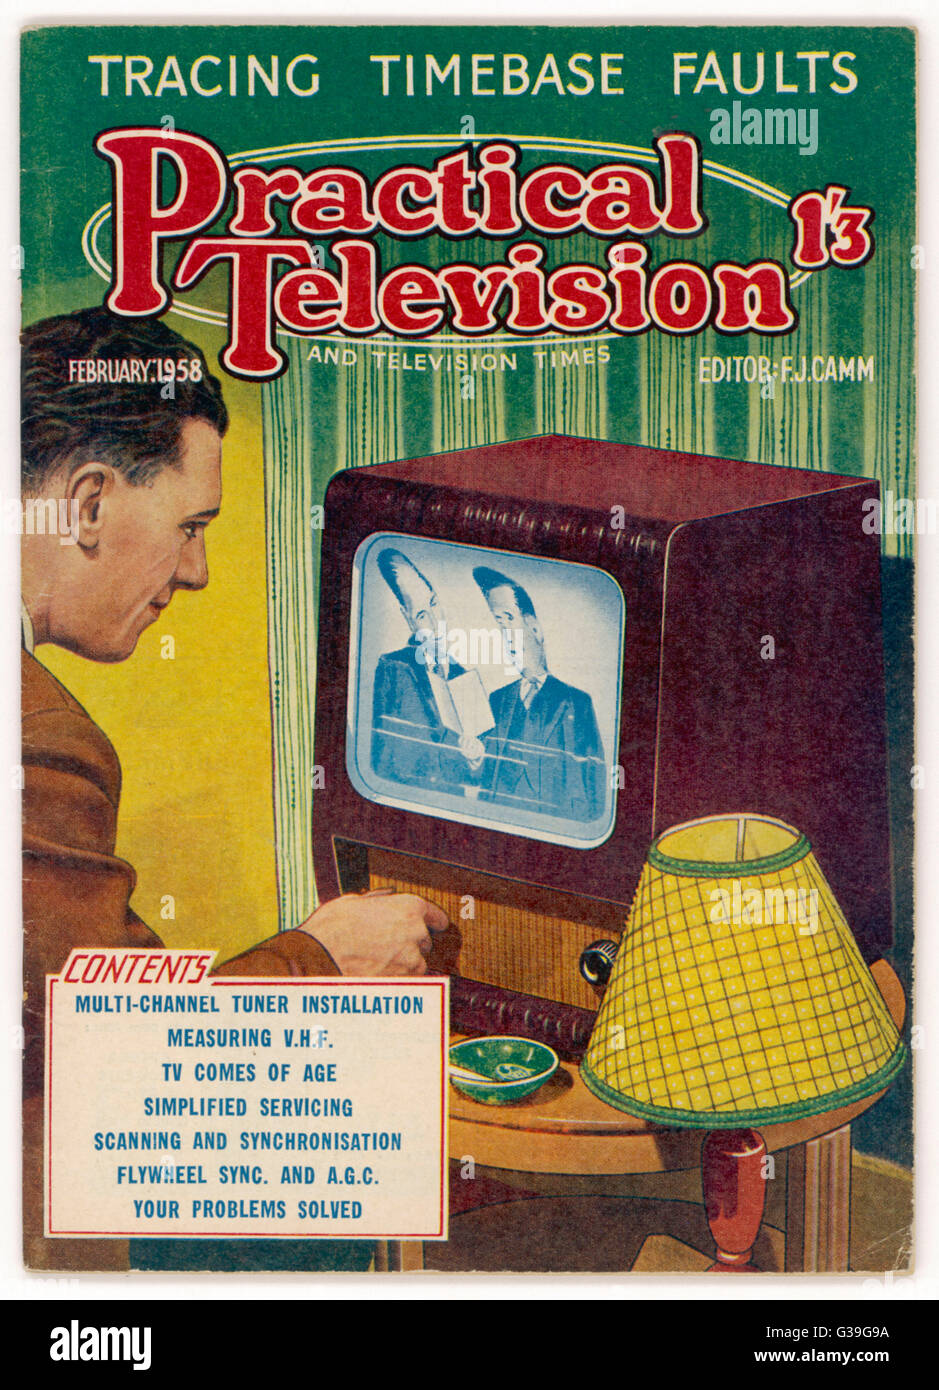 Adjusting an early television  set         Date: 1958 - Stock Image